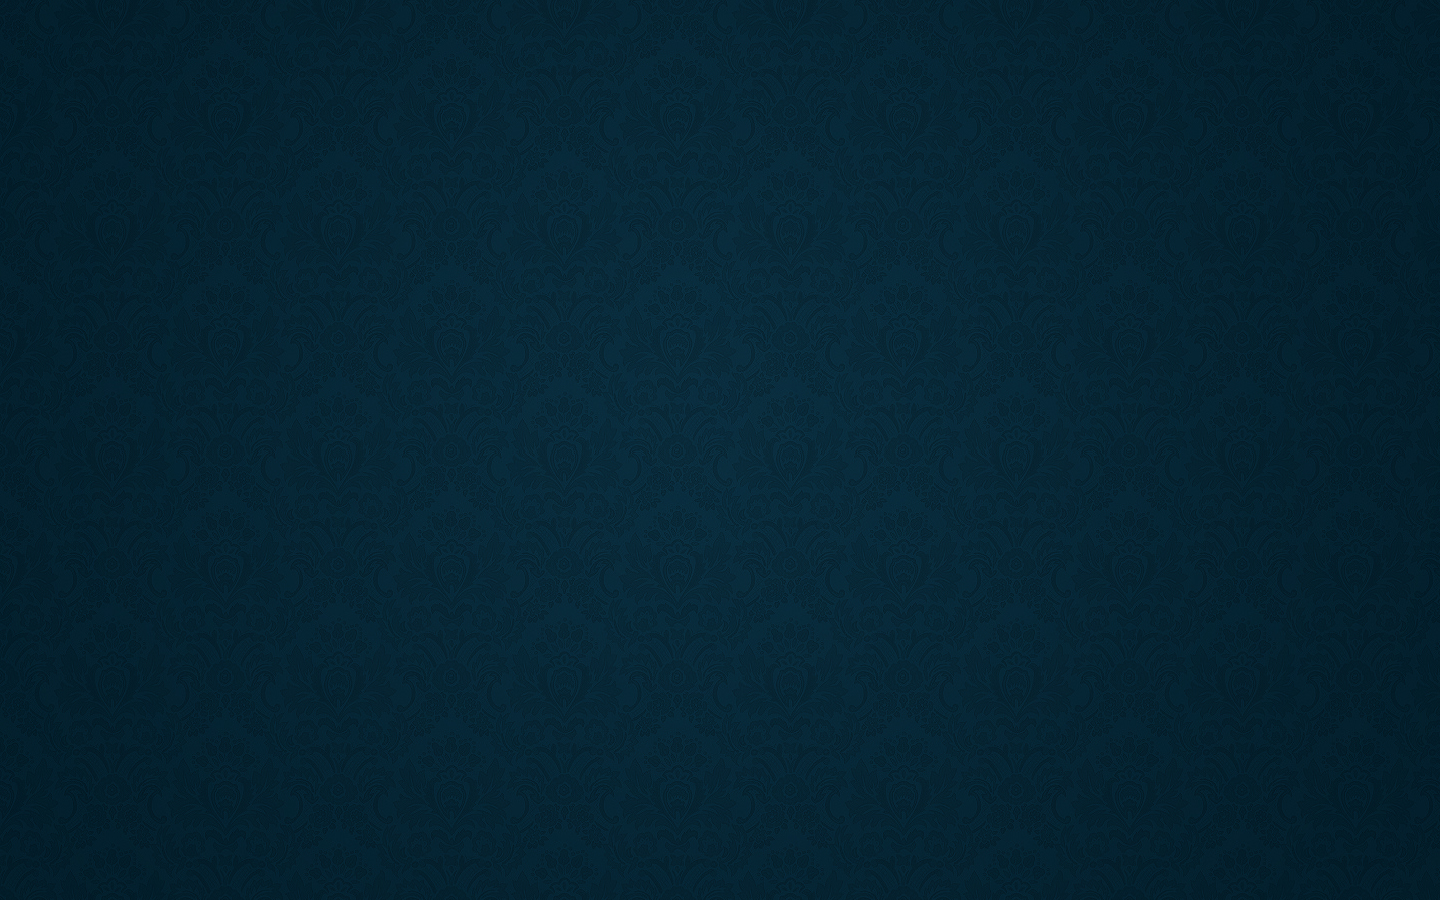 Solid Colored Wallpaper